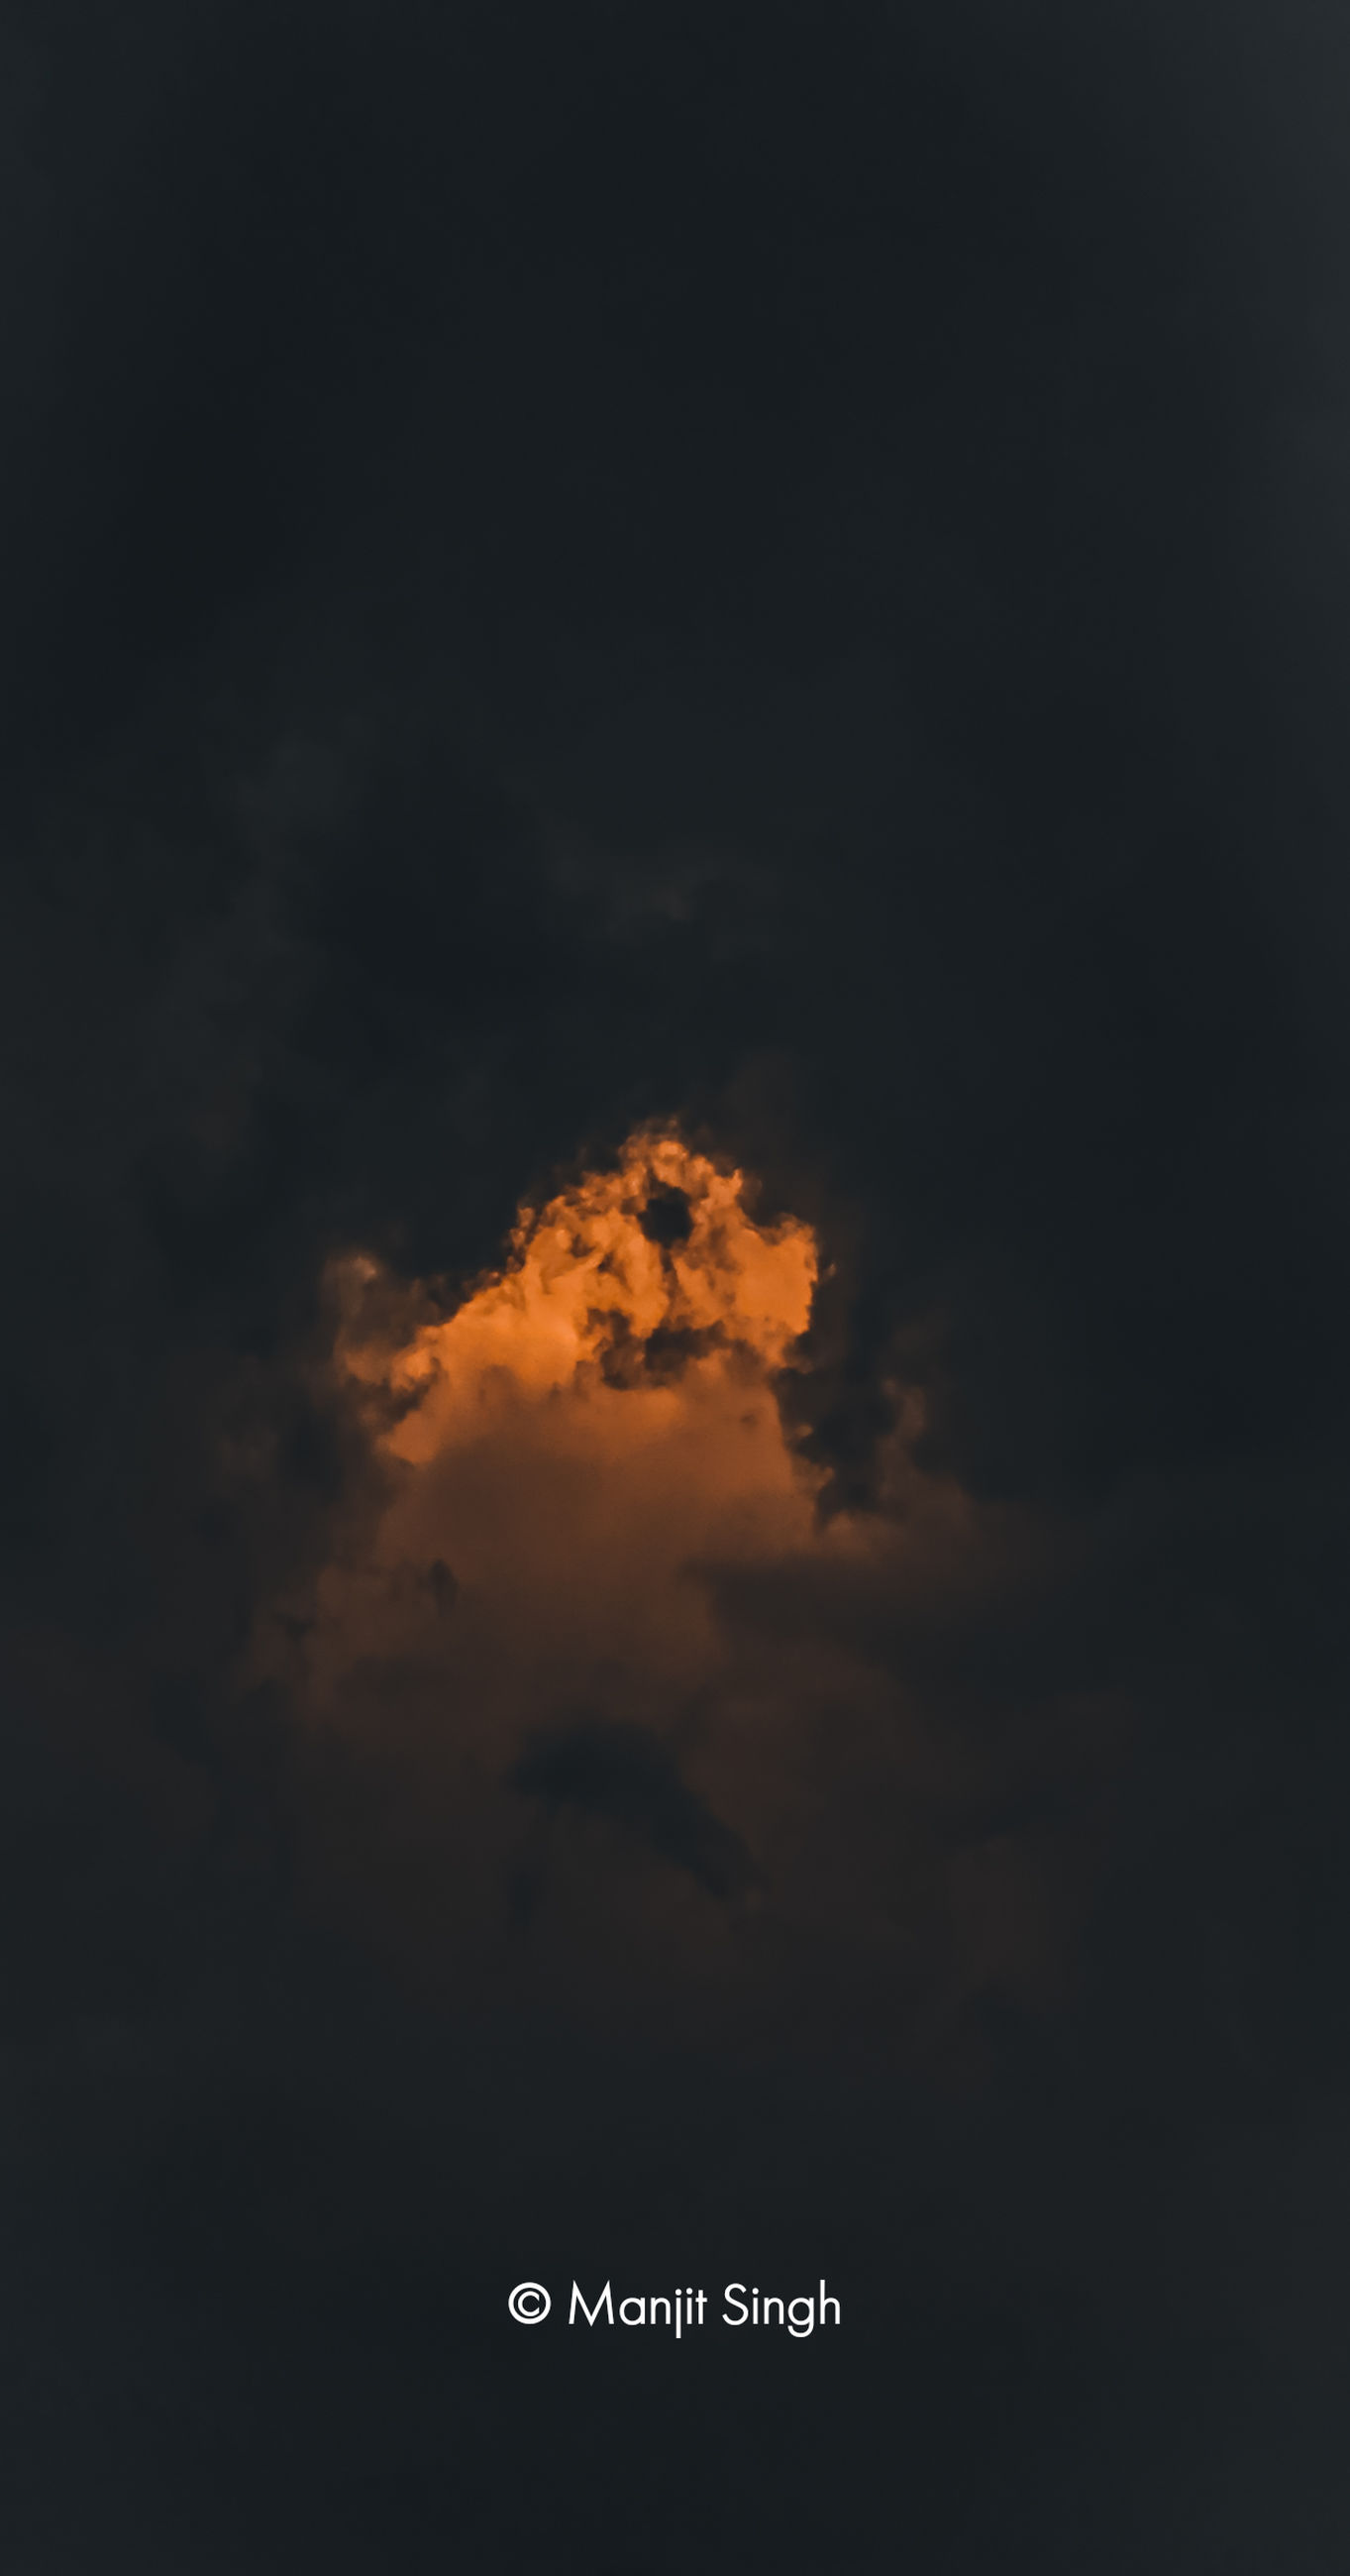 cloud - sky, sky, communication, no people, text, low angle view, sign, nature, western script, beauty in nature, sunset, outdoors, copy space, scenics - nature, orange color, number, tranquil scene, tranquility, idyllic, technology